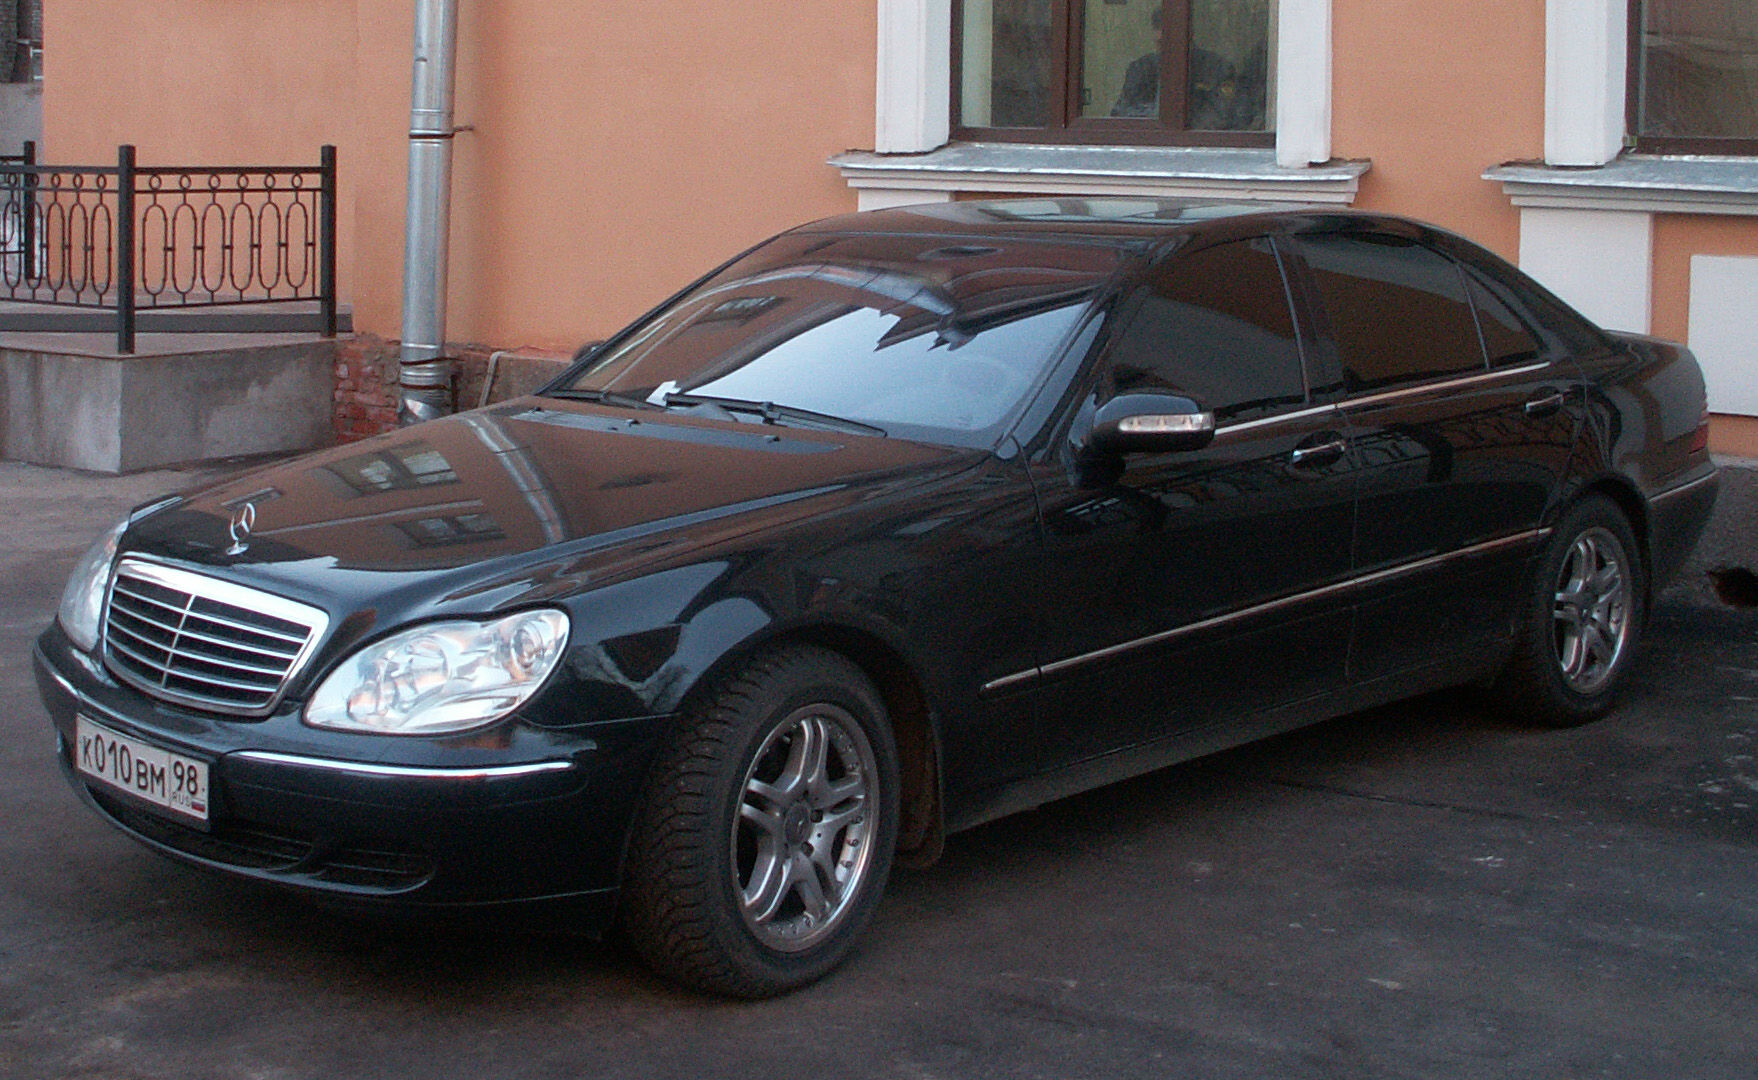 2004 mercedes benz s350 pictures for sale. Black Bedroom Furniture Sets. Home Design Ideas